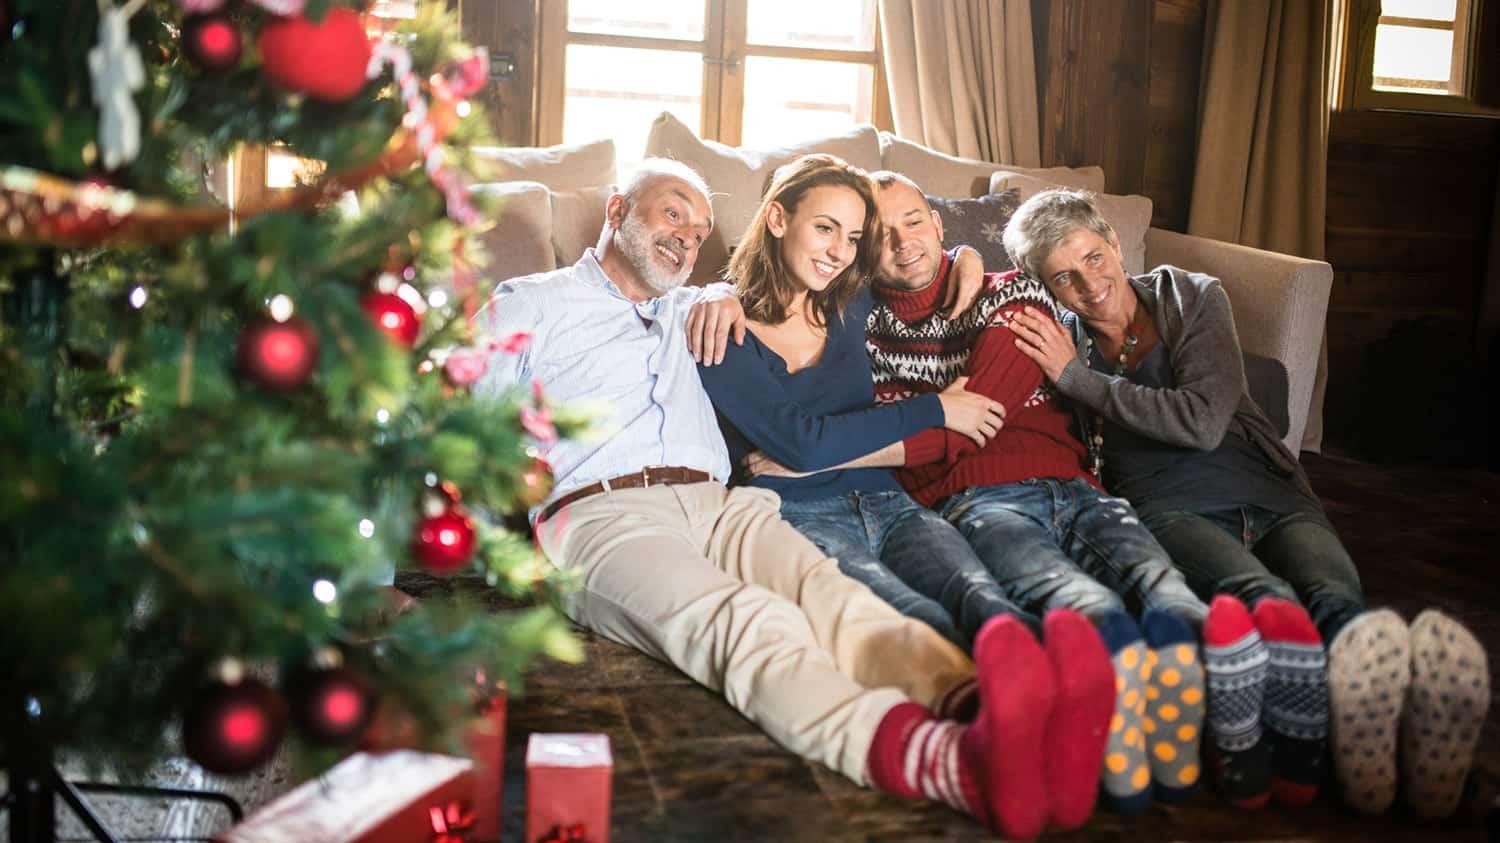 Christmas Memories.What Are Your Favorite Christmas Memories And Traditions